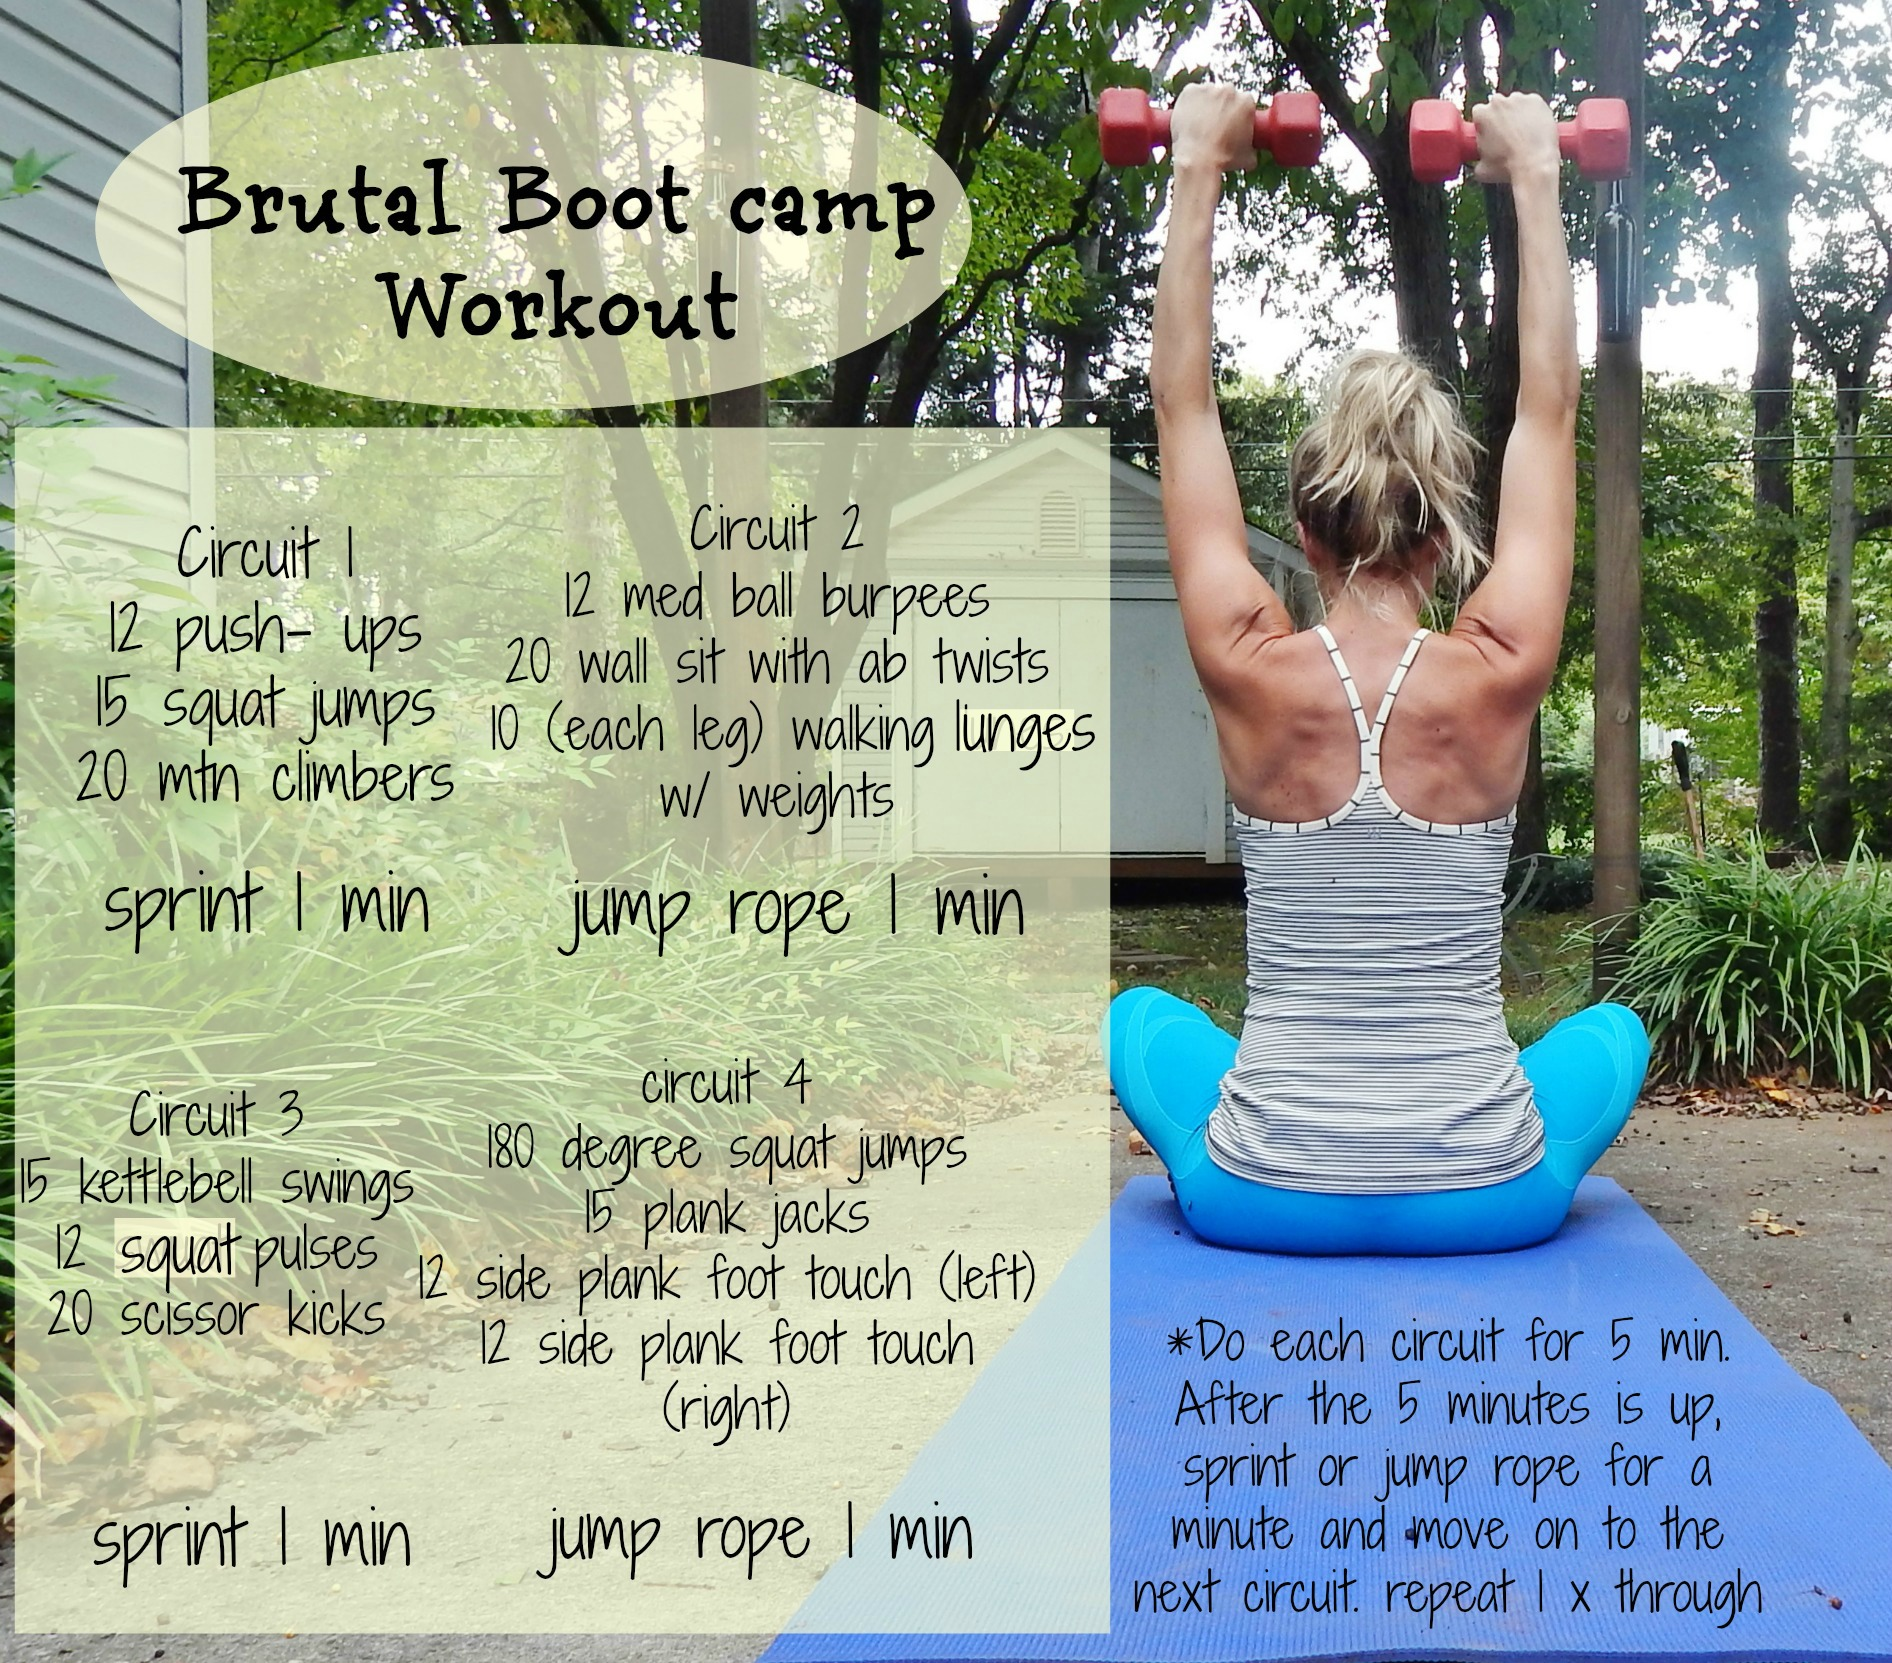 Brutal Boot Camp Workout